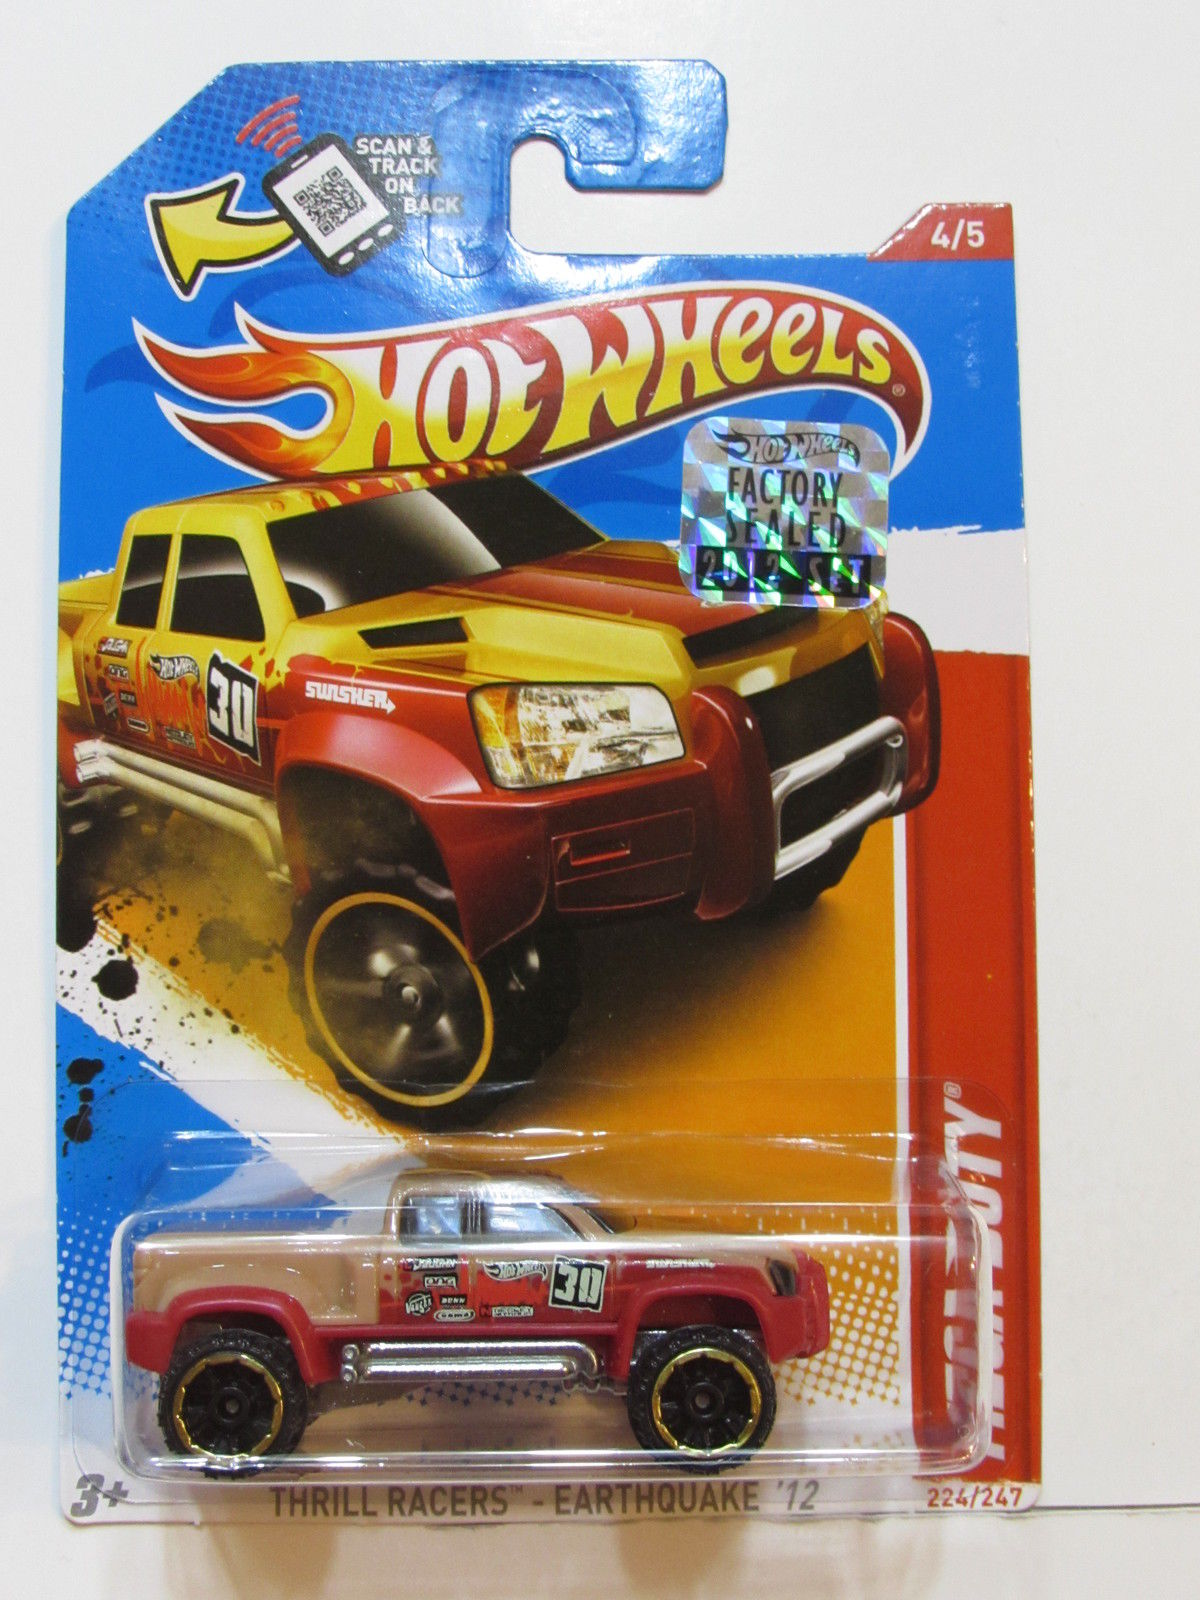 HOT WHEELS 2012 THRILL RACERS-EARTHQUAKE MEGA-DUTY FACTORY SEALED